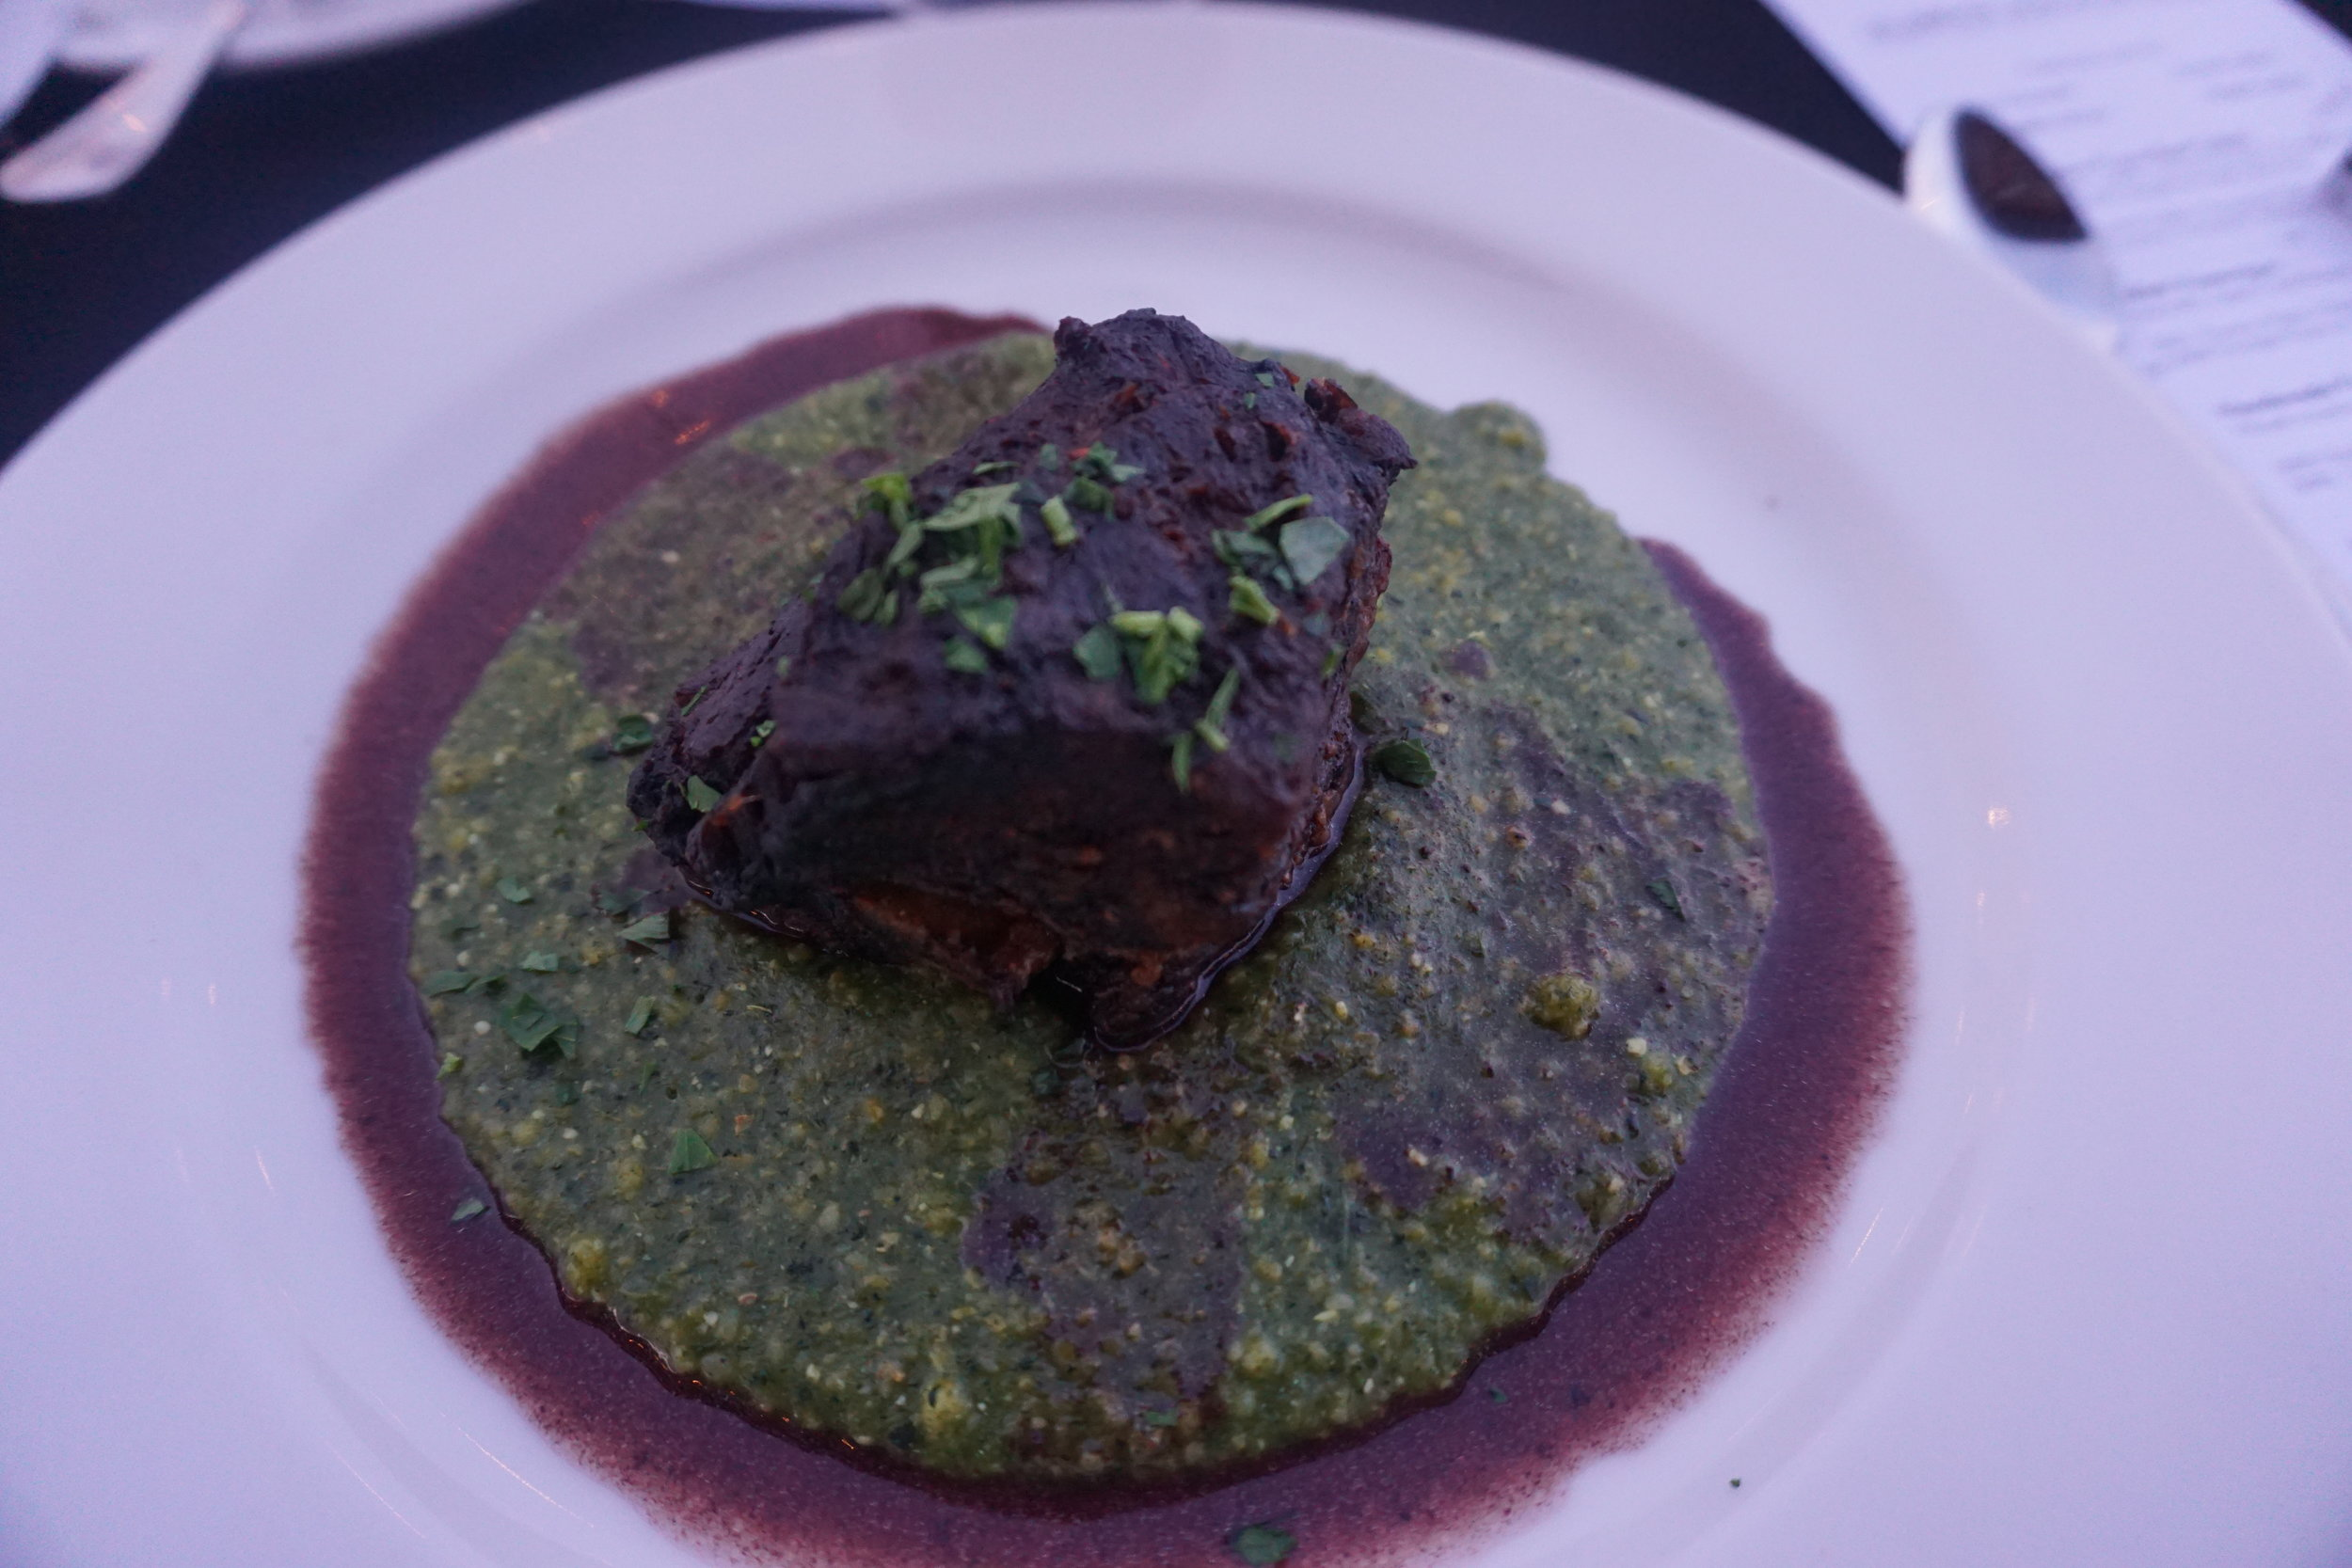 Meat lovers rejoiced at the beautiful display of the main course—merlot braised beef short ribs served atop green polenta—set before us at the Young Guns Wine Dinner in Walla Walla. Viki Eierdam